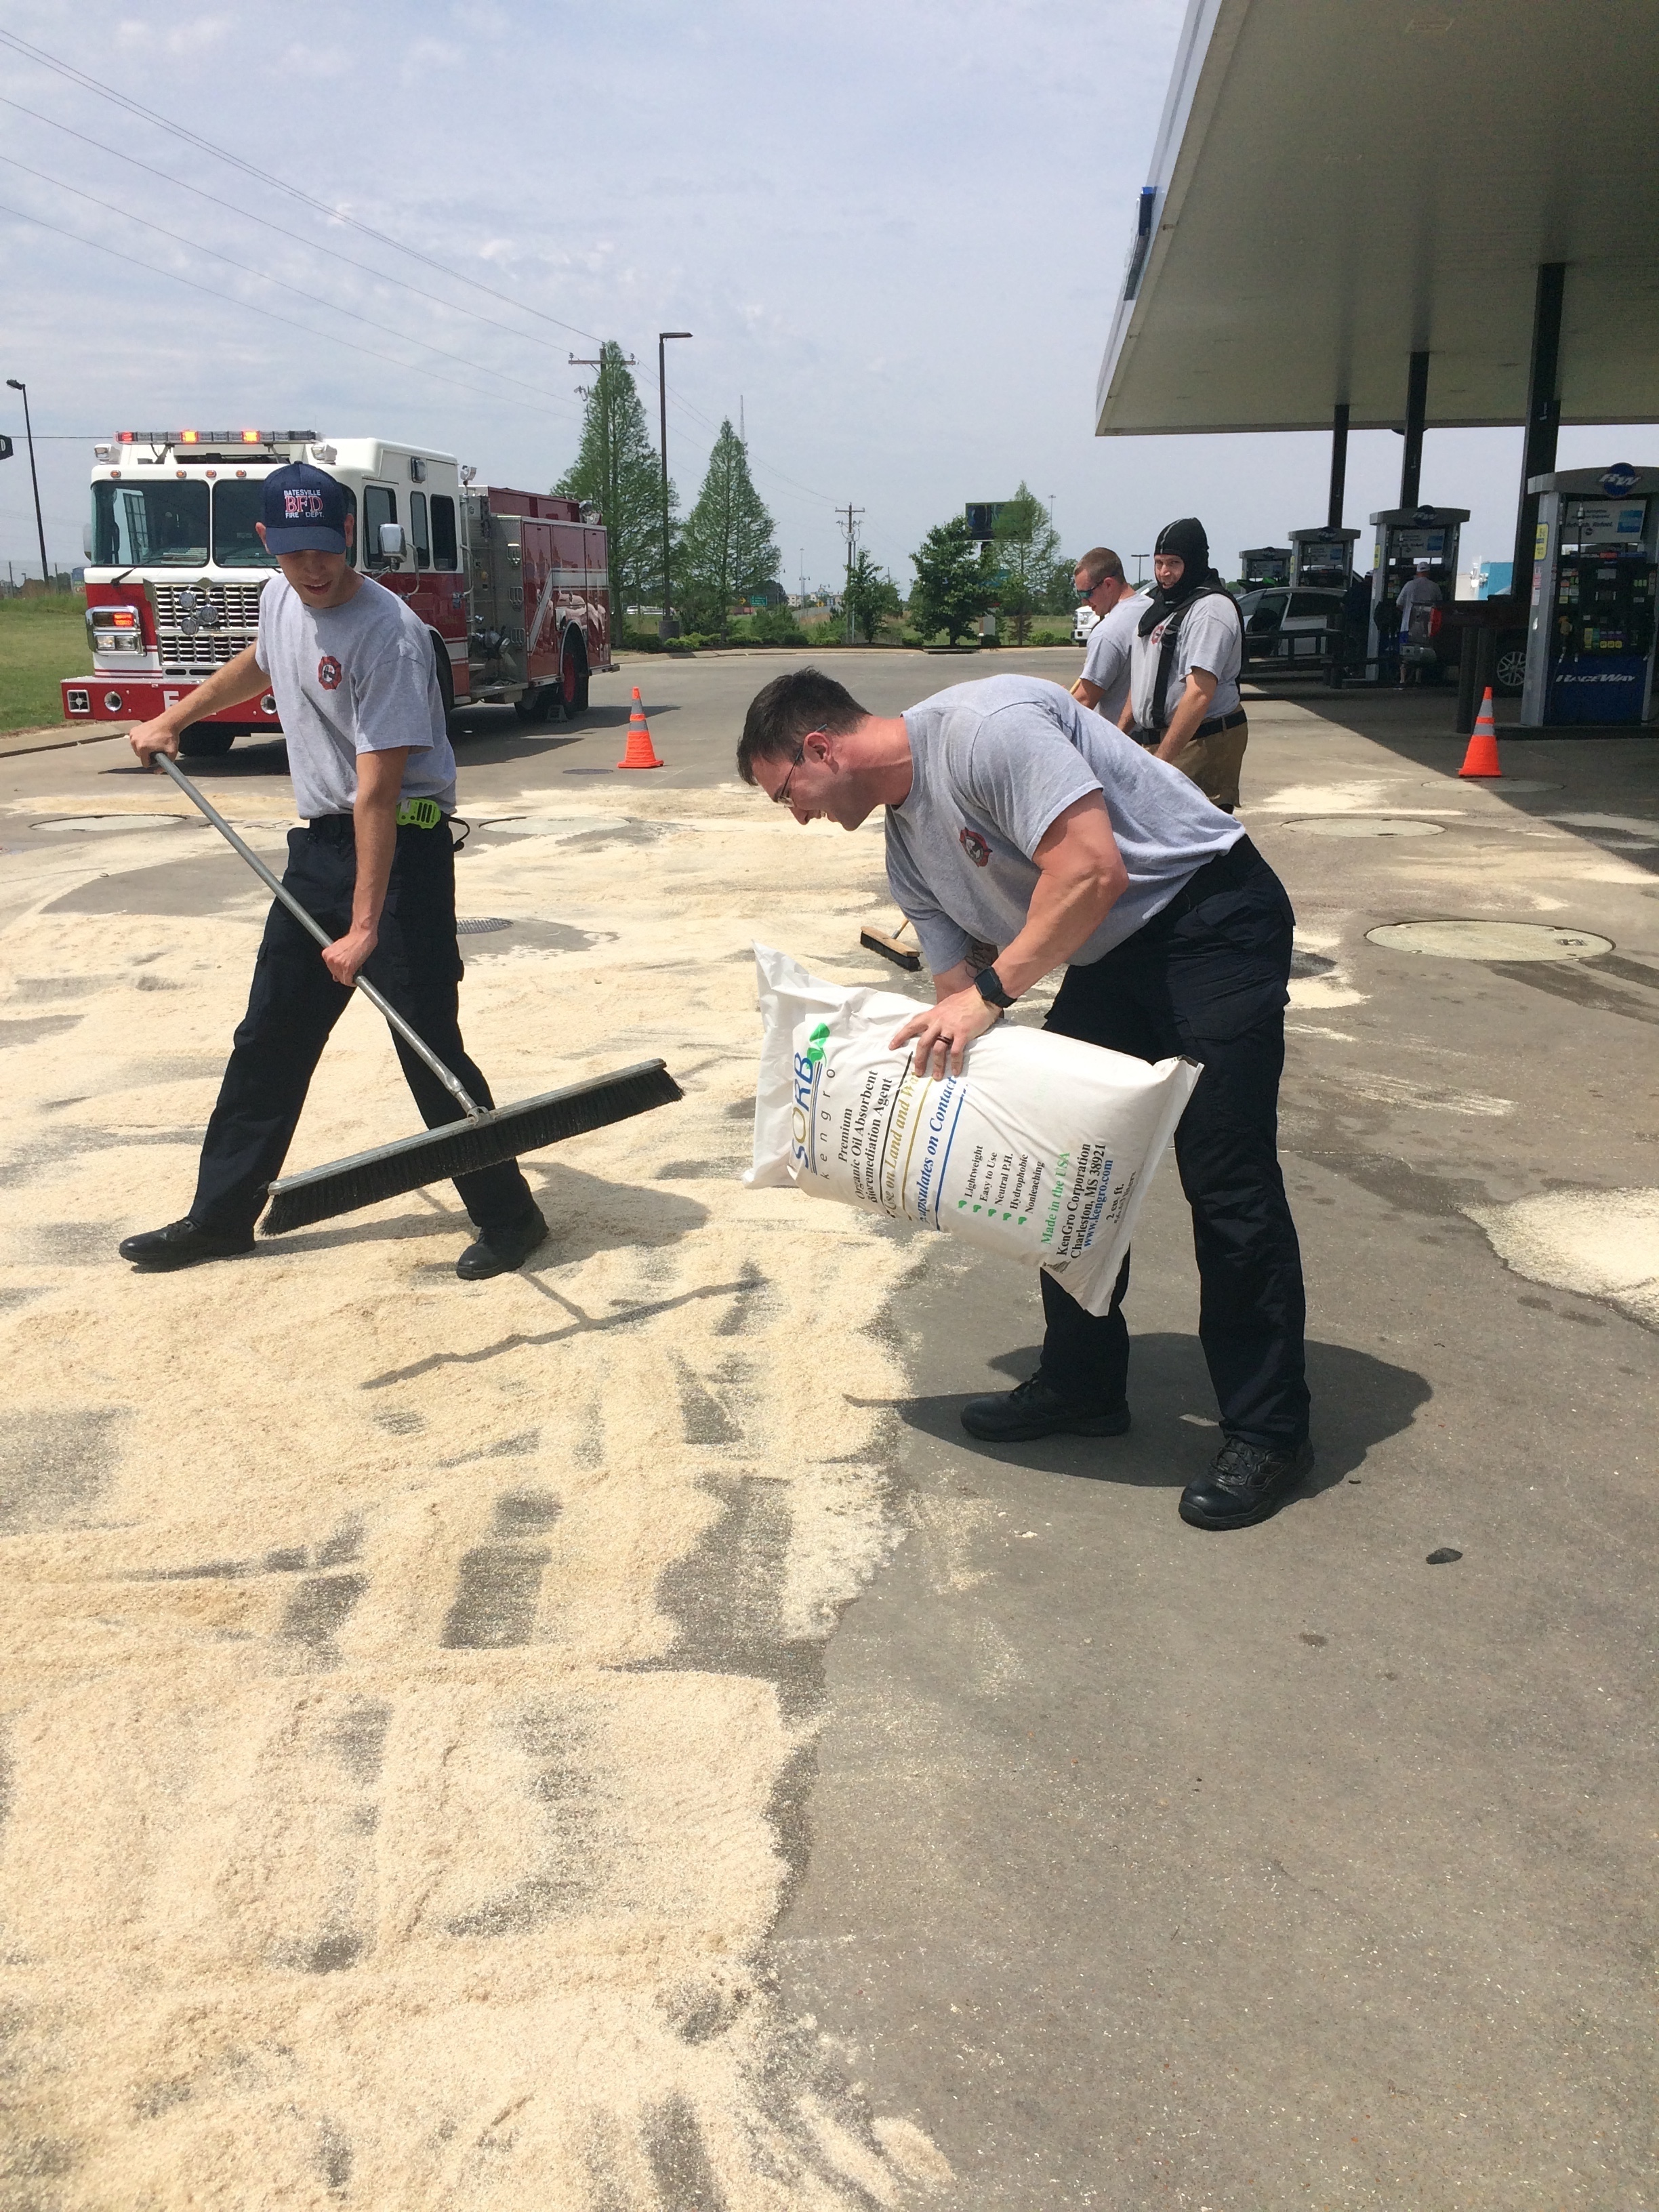 Firemen using Kengro Biosorb biodegradable oil absorbent to clean up a spill.